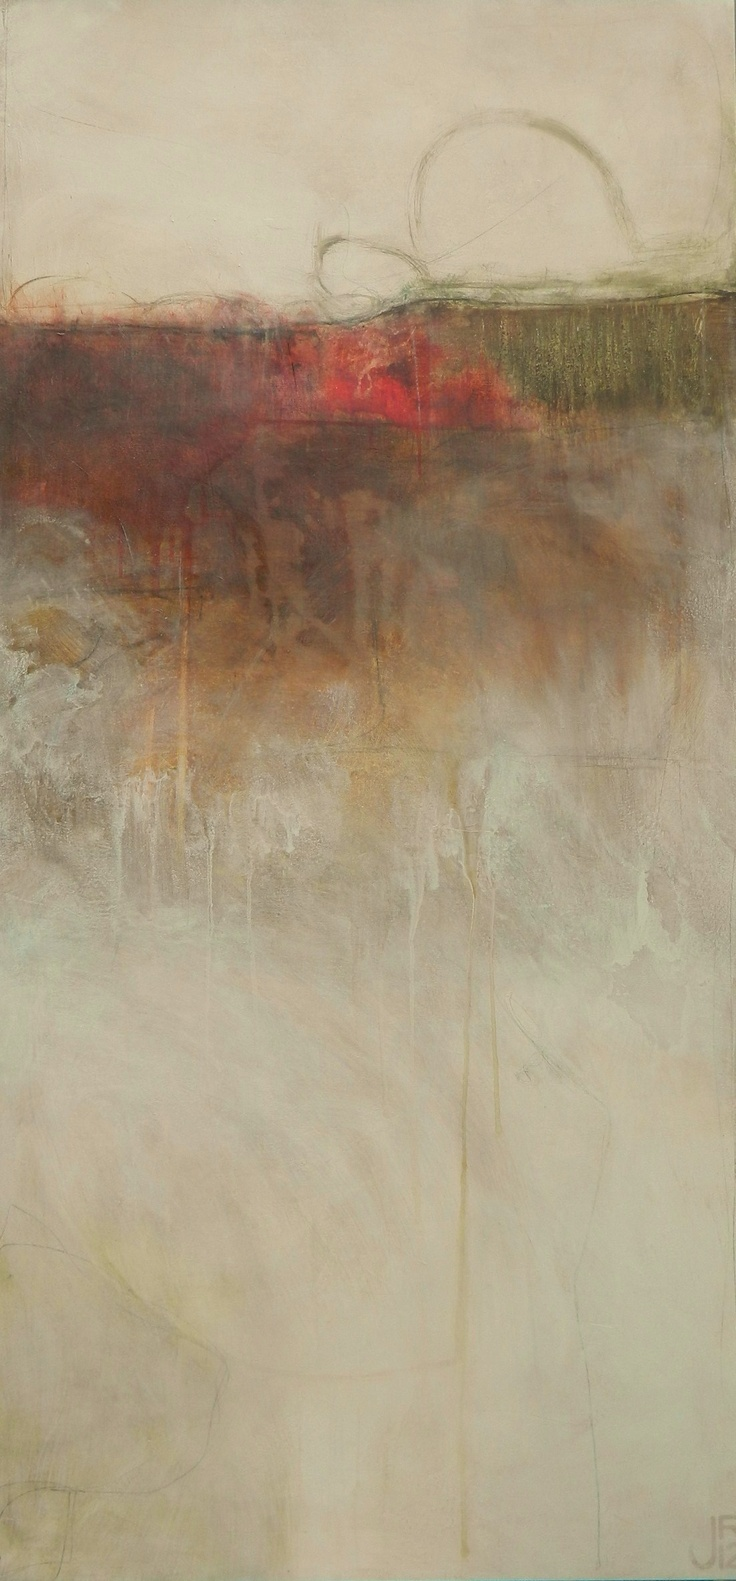 With Autumn Closing In  - abstract painting by Jennifer Rivera